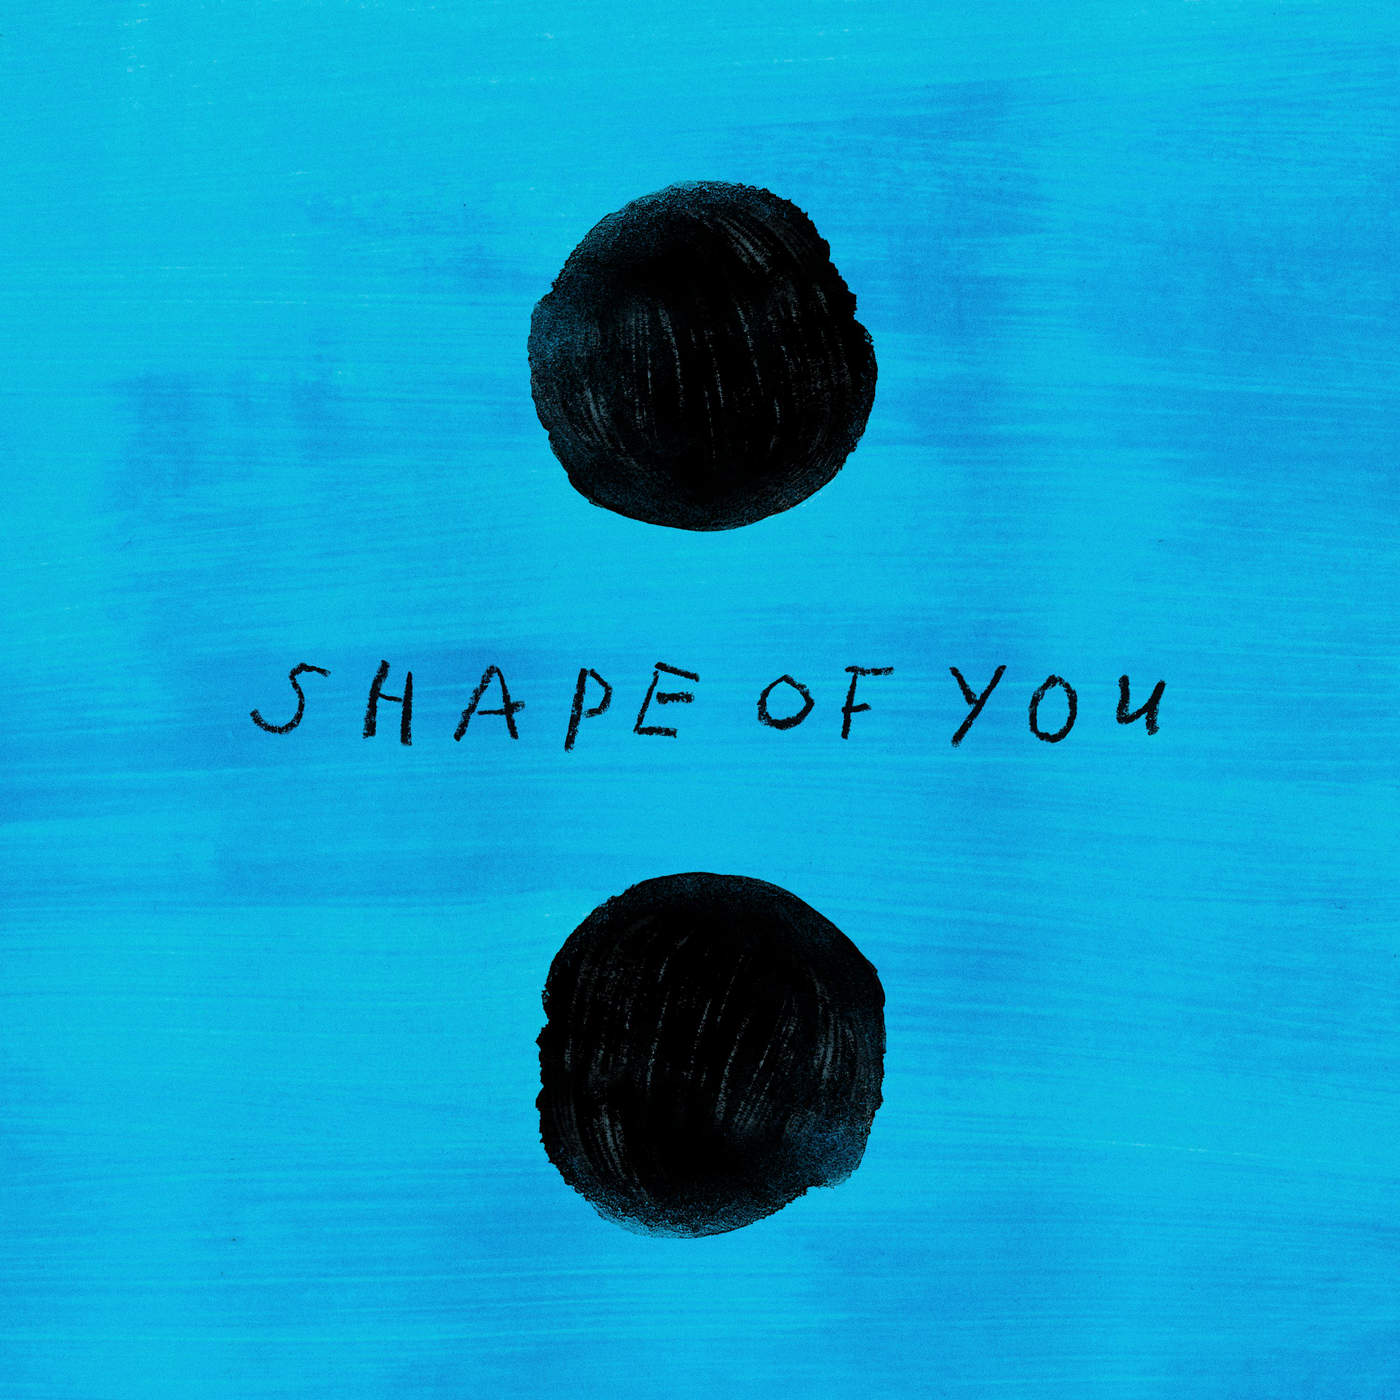 Ed Sheeran - Shape of You Mp3 Download (4.88 MB)